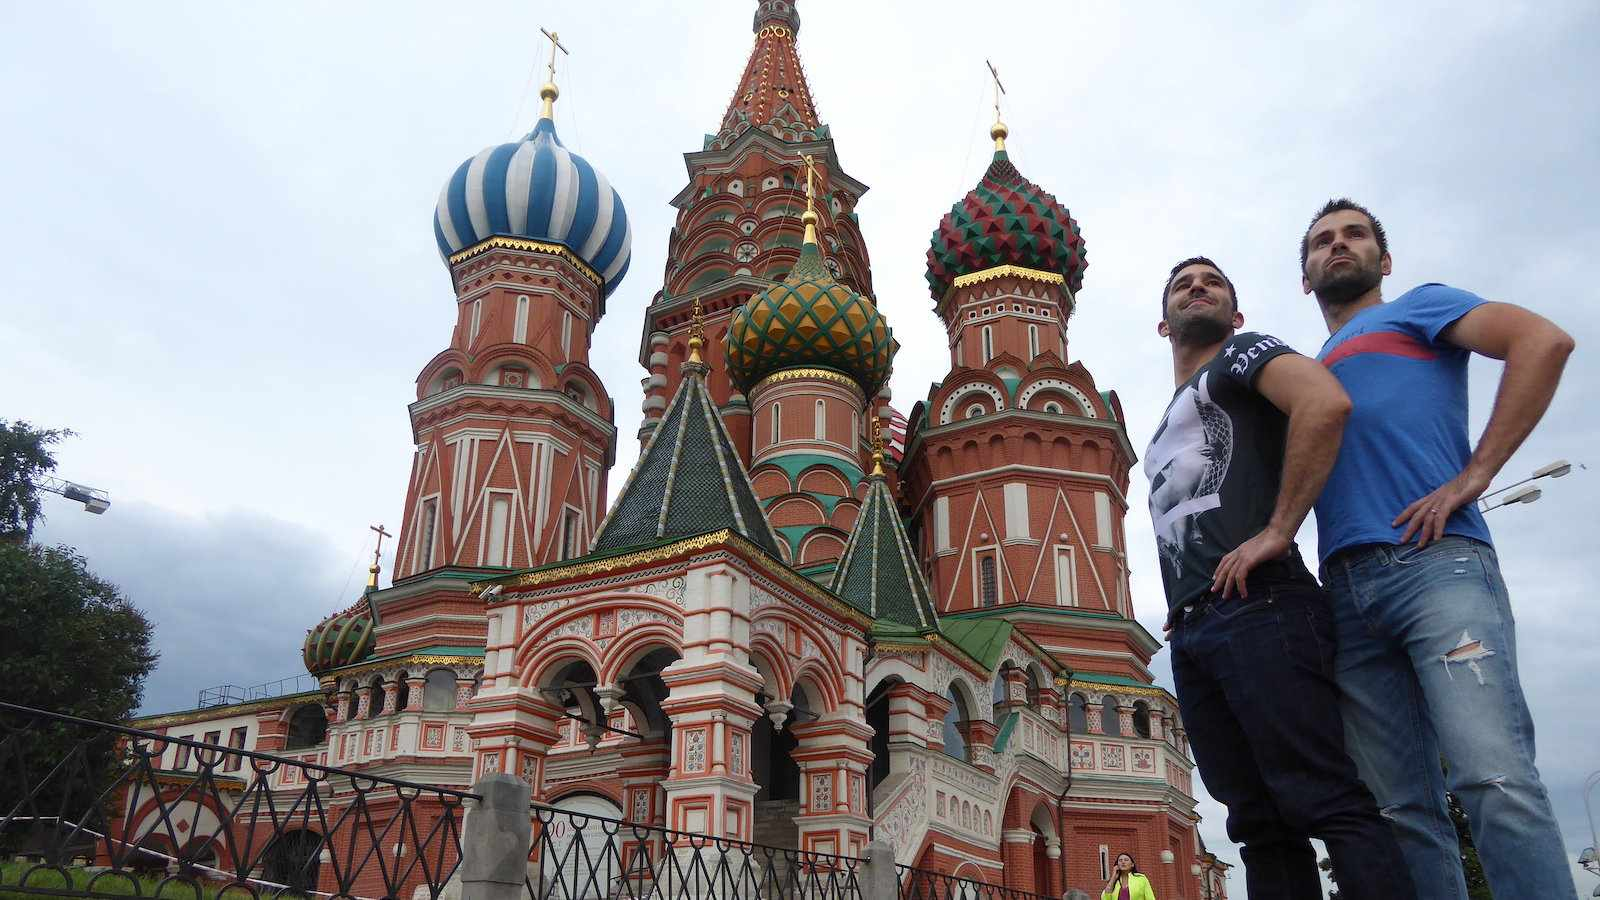 Russia can be a safe destination for gay travellers if you follow our safety tips